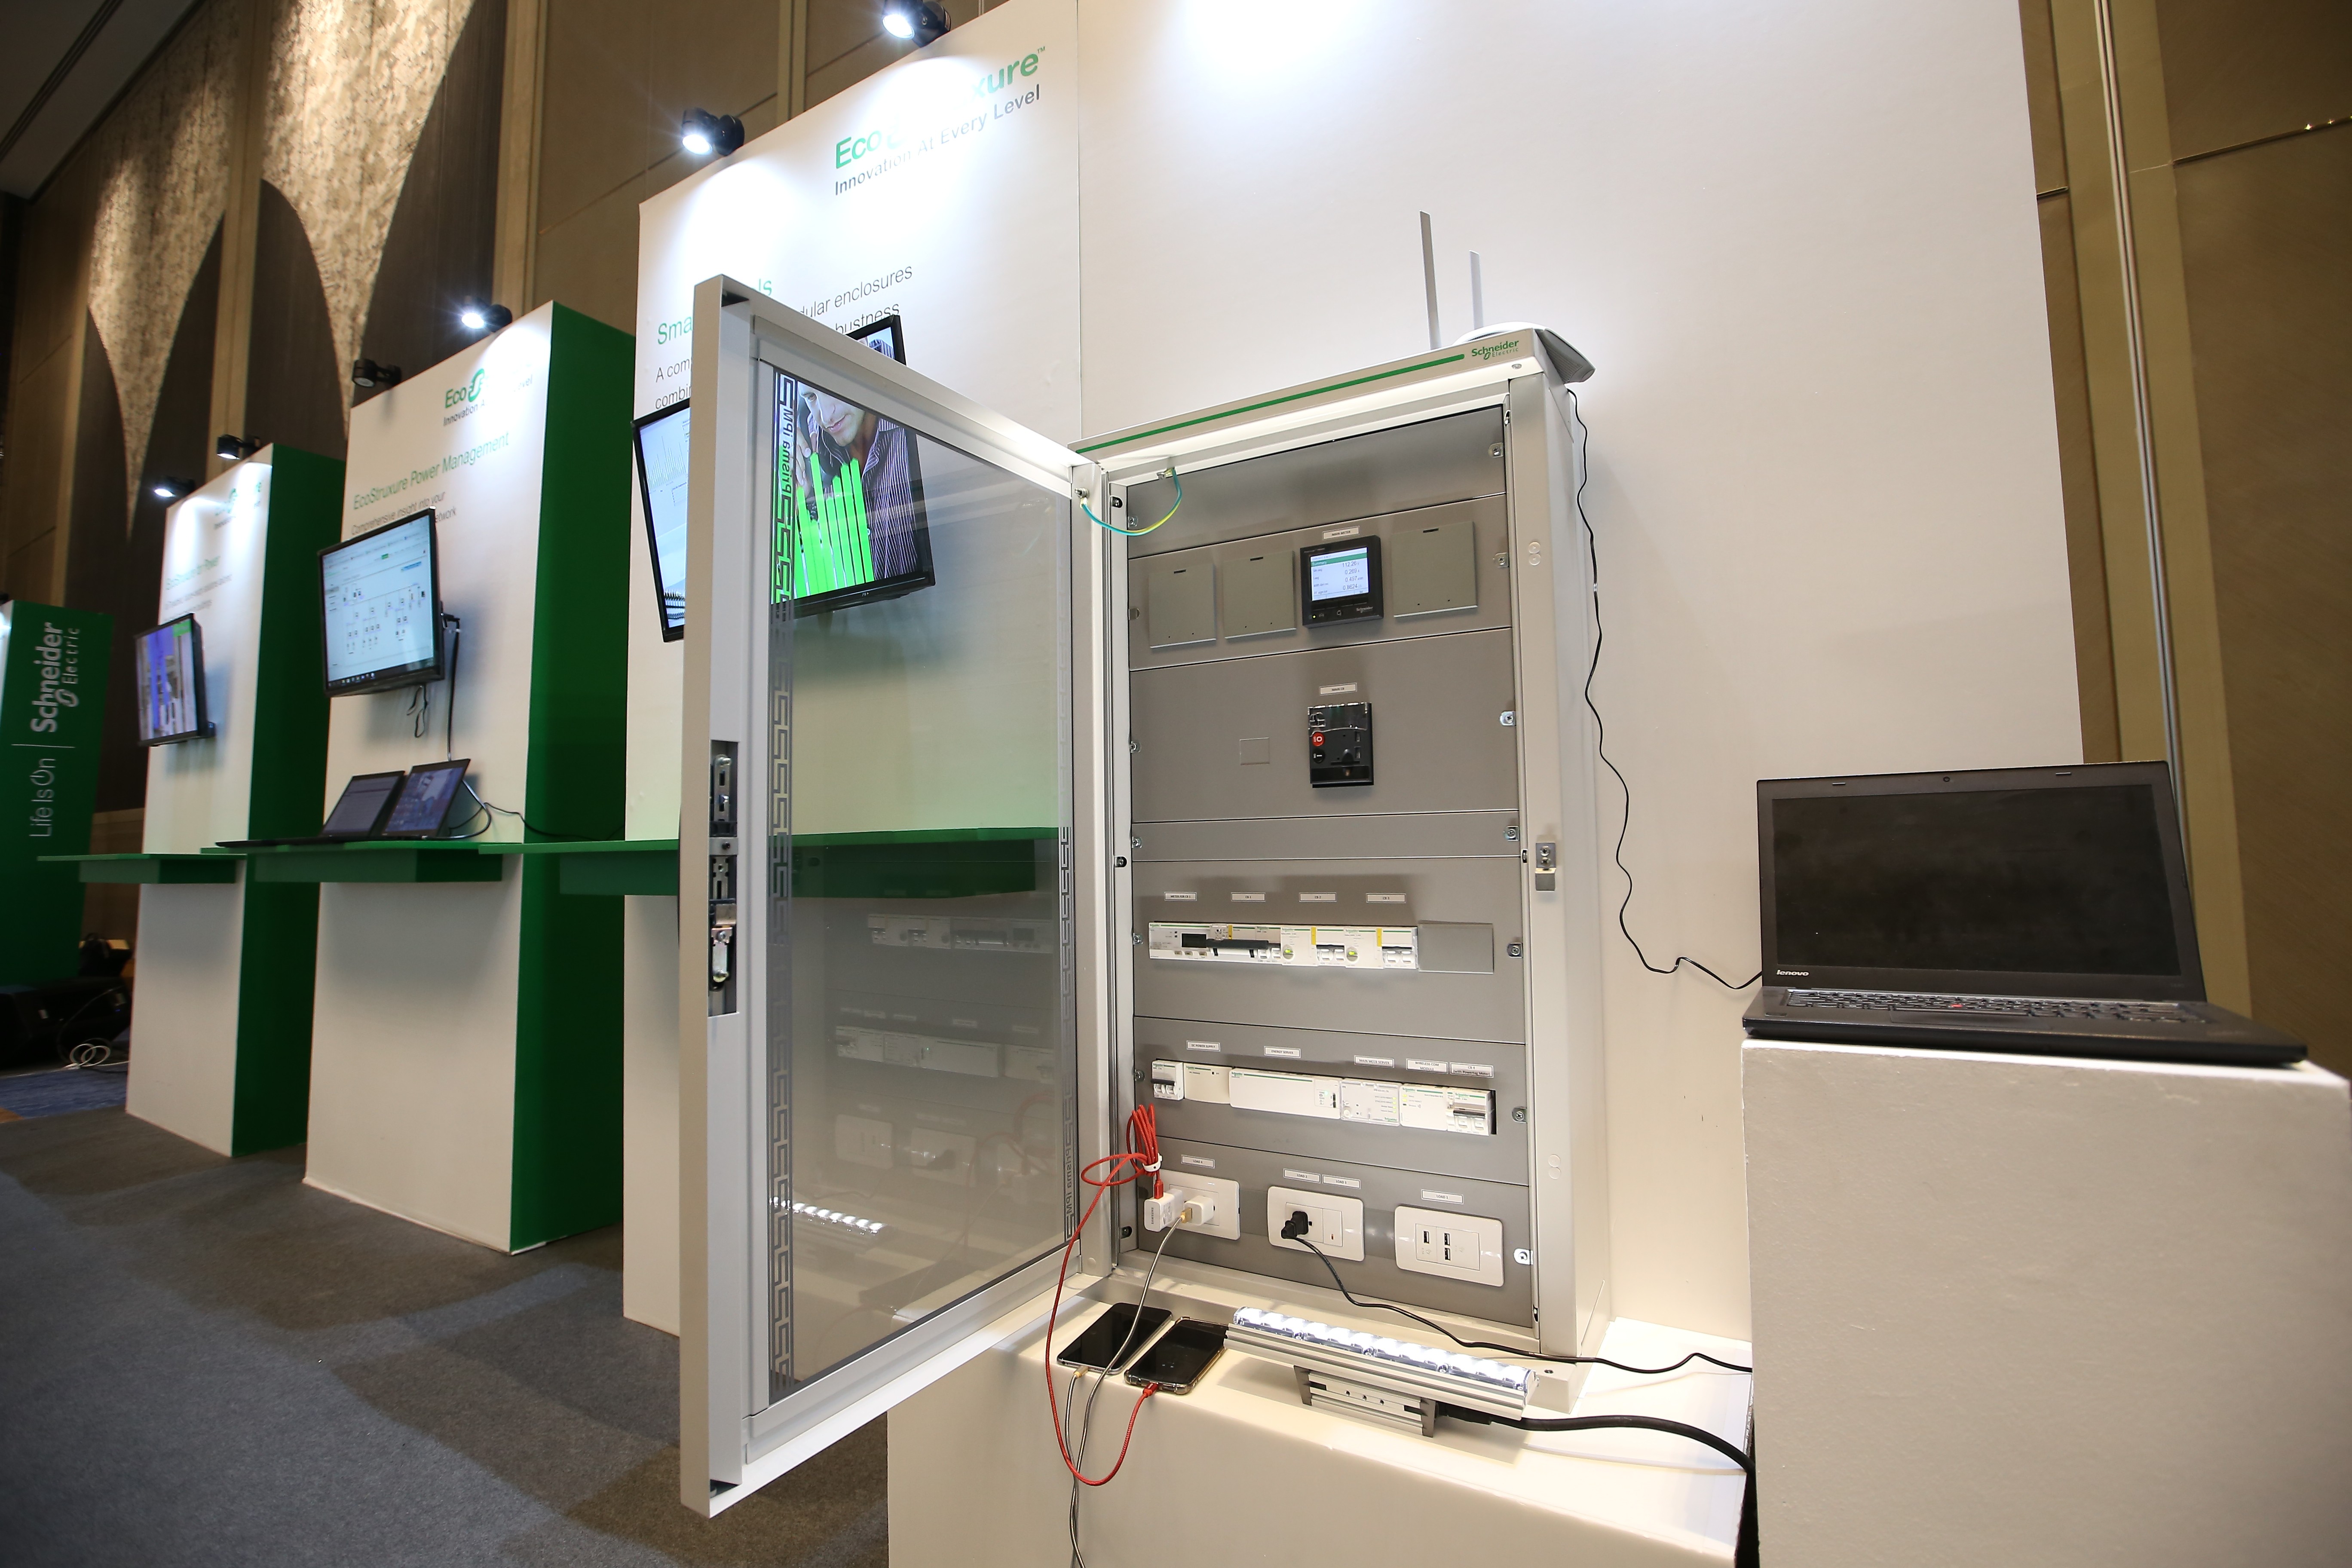 The Schneider Electric Smart Panel.